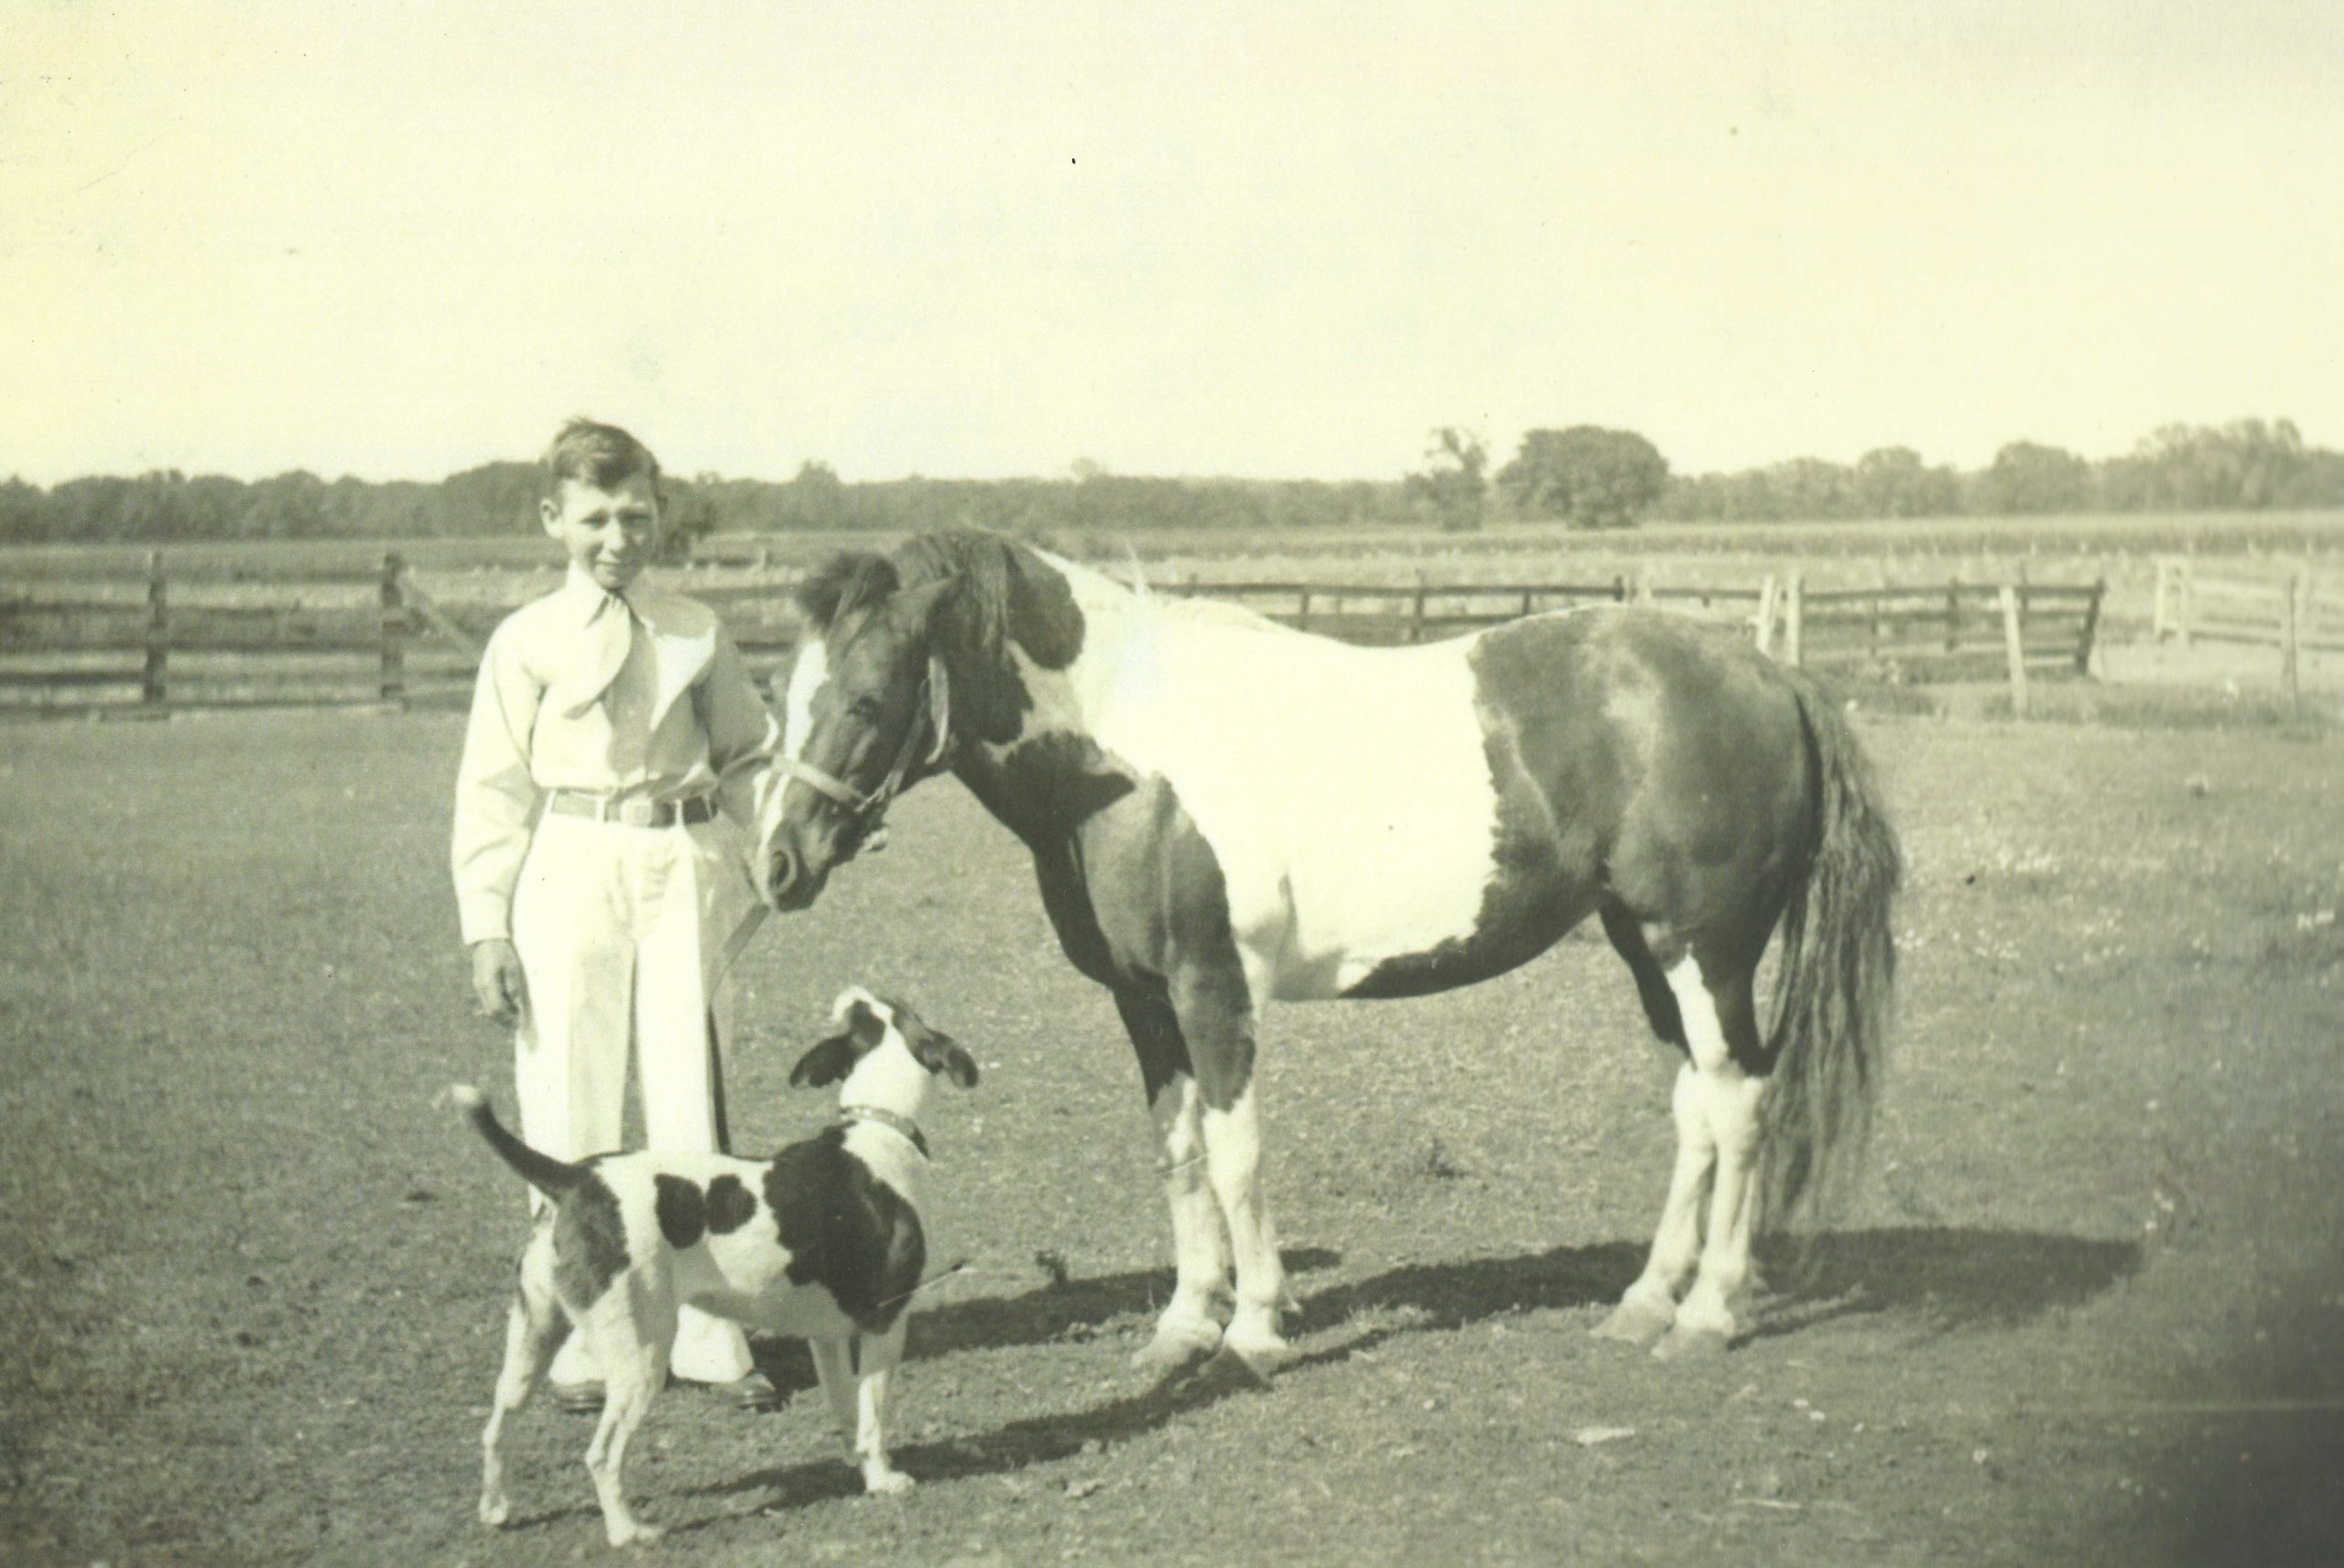 Photo of Virgil Crofter with his pony and dog